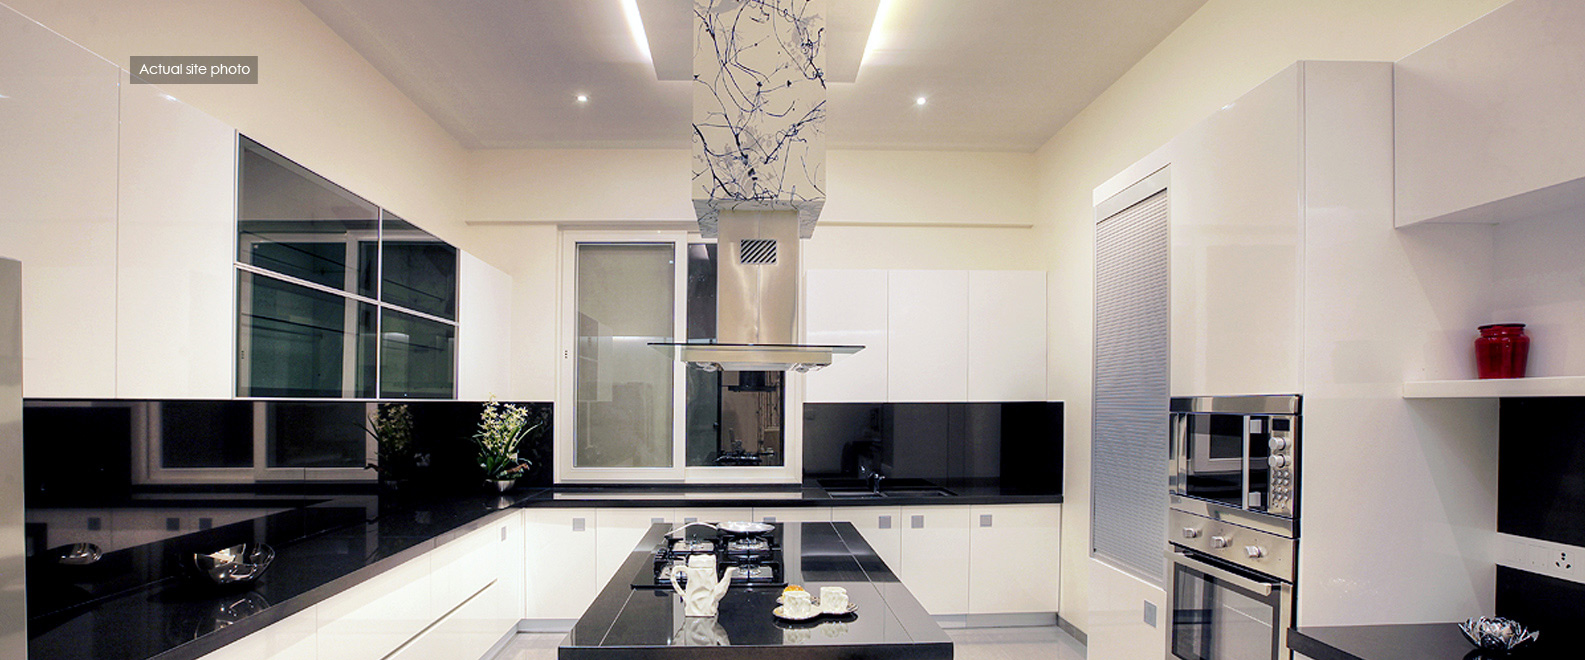 modular kitchen designs - Kitchen Wardrobe Designs